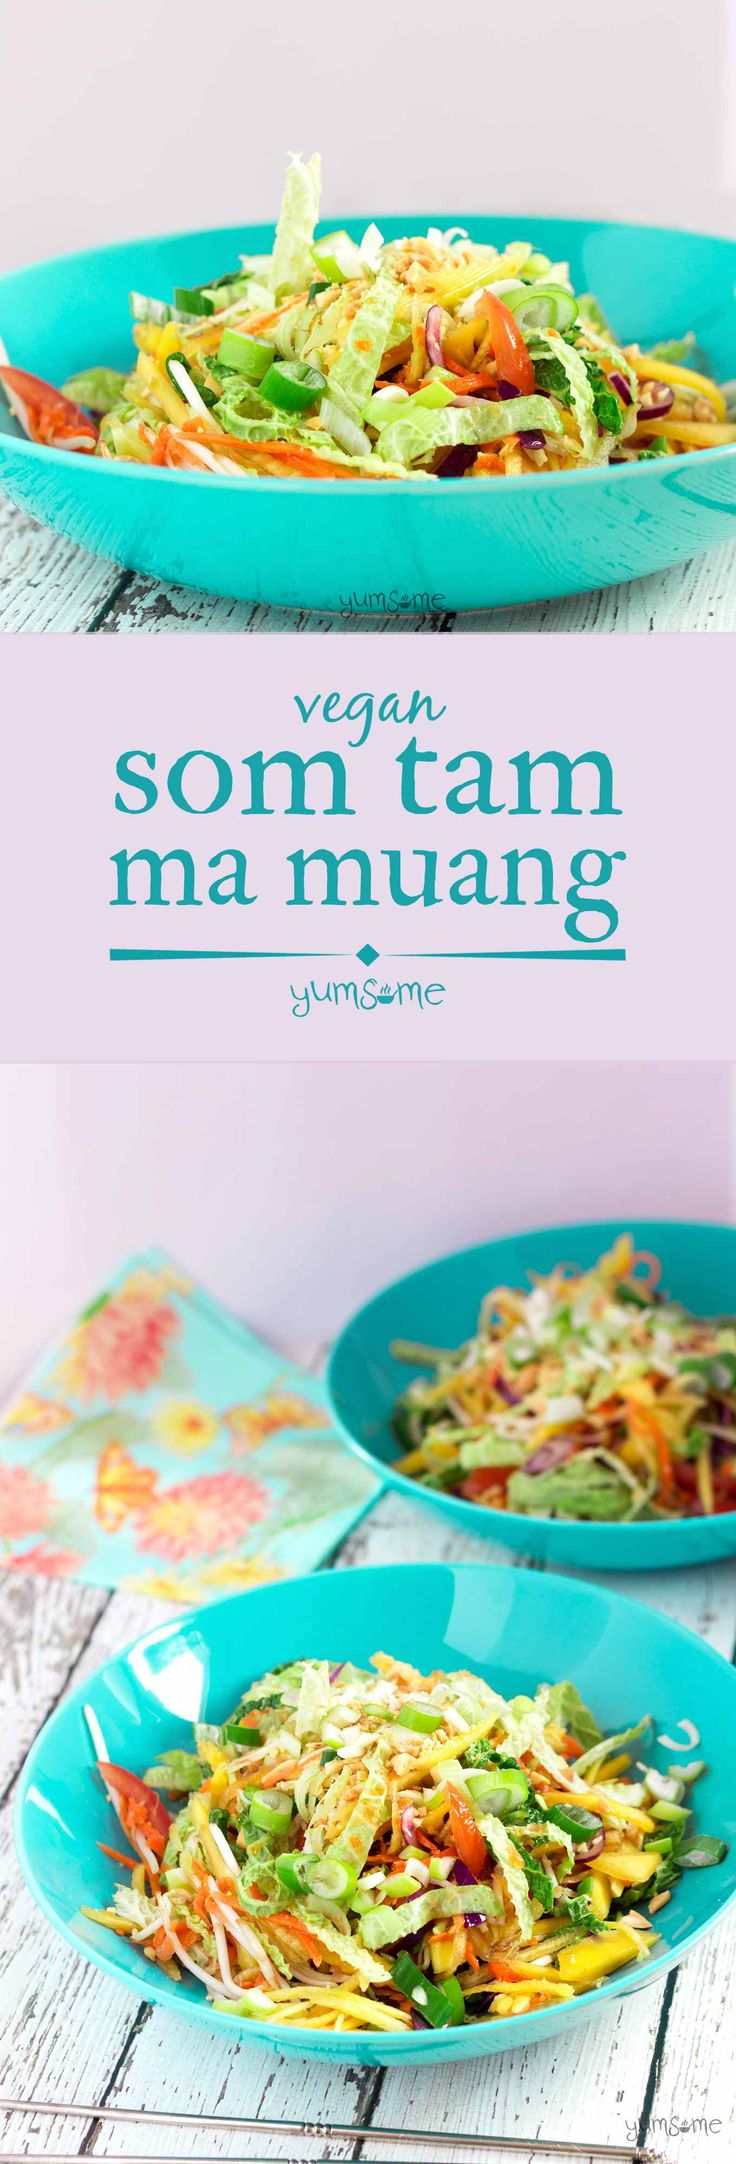 Ready in 20 mins, vegan som tam is a simple, delicious Thai salad made with crunchy vegetables dressed in a fresh and zingy hot, sour, salty, sweet sauce. | yumsome.com via @yums0me